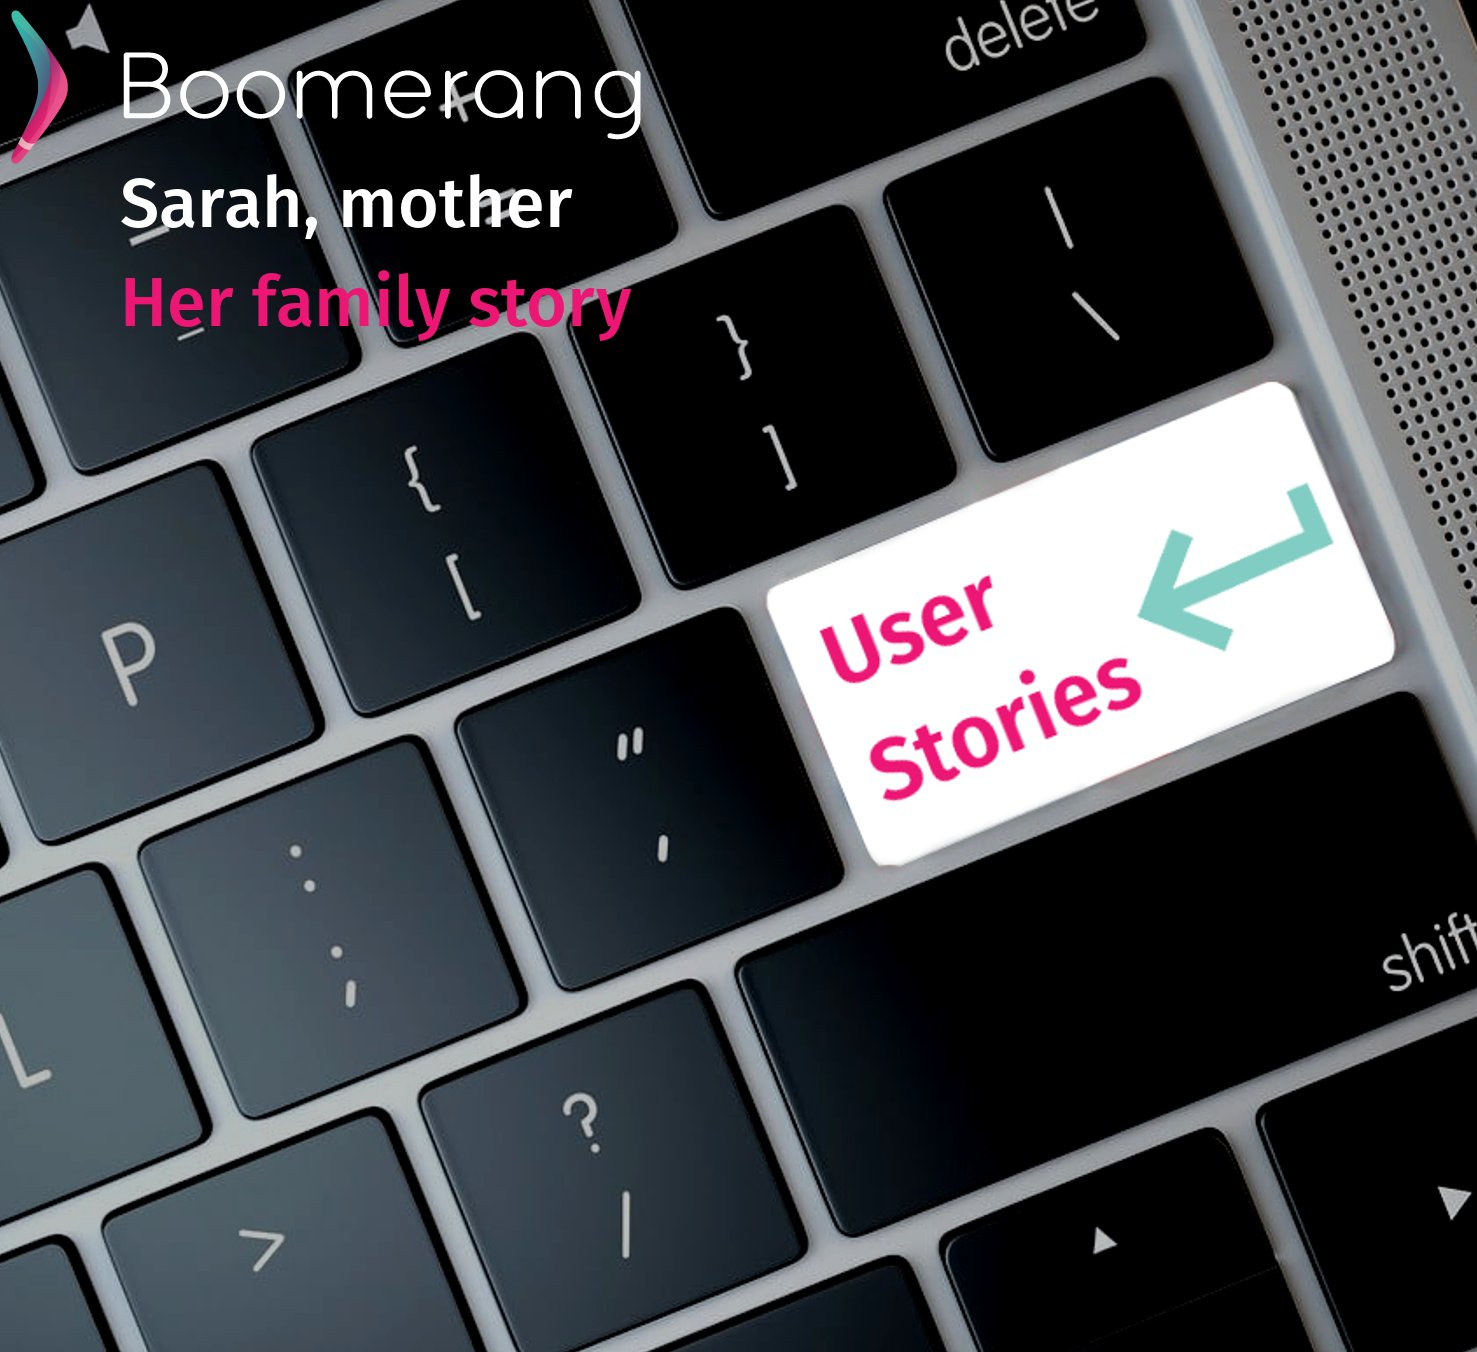 Boomerang User Stories - Sarah